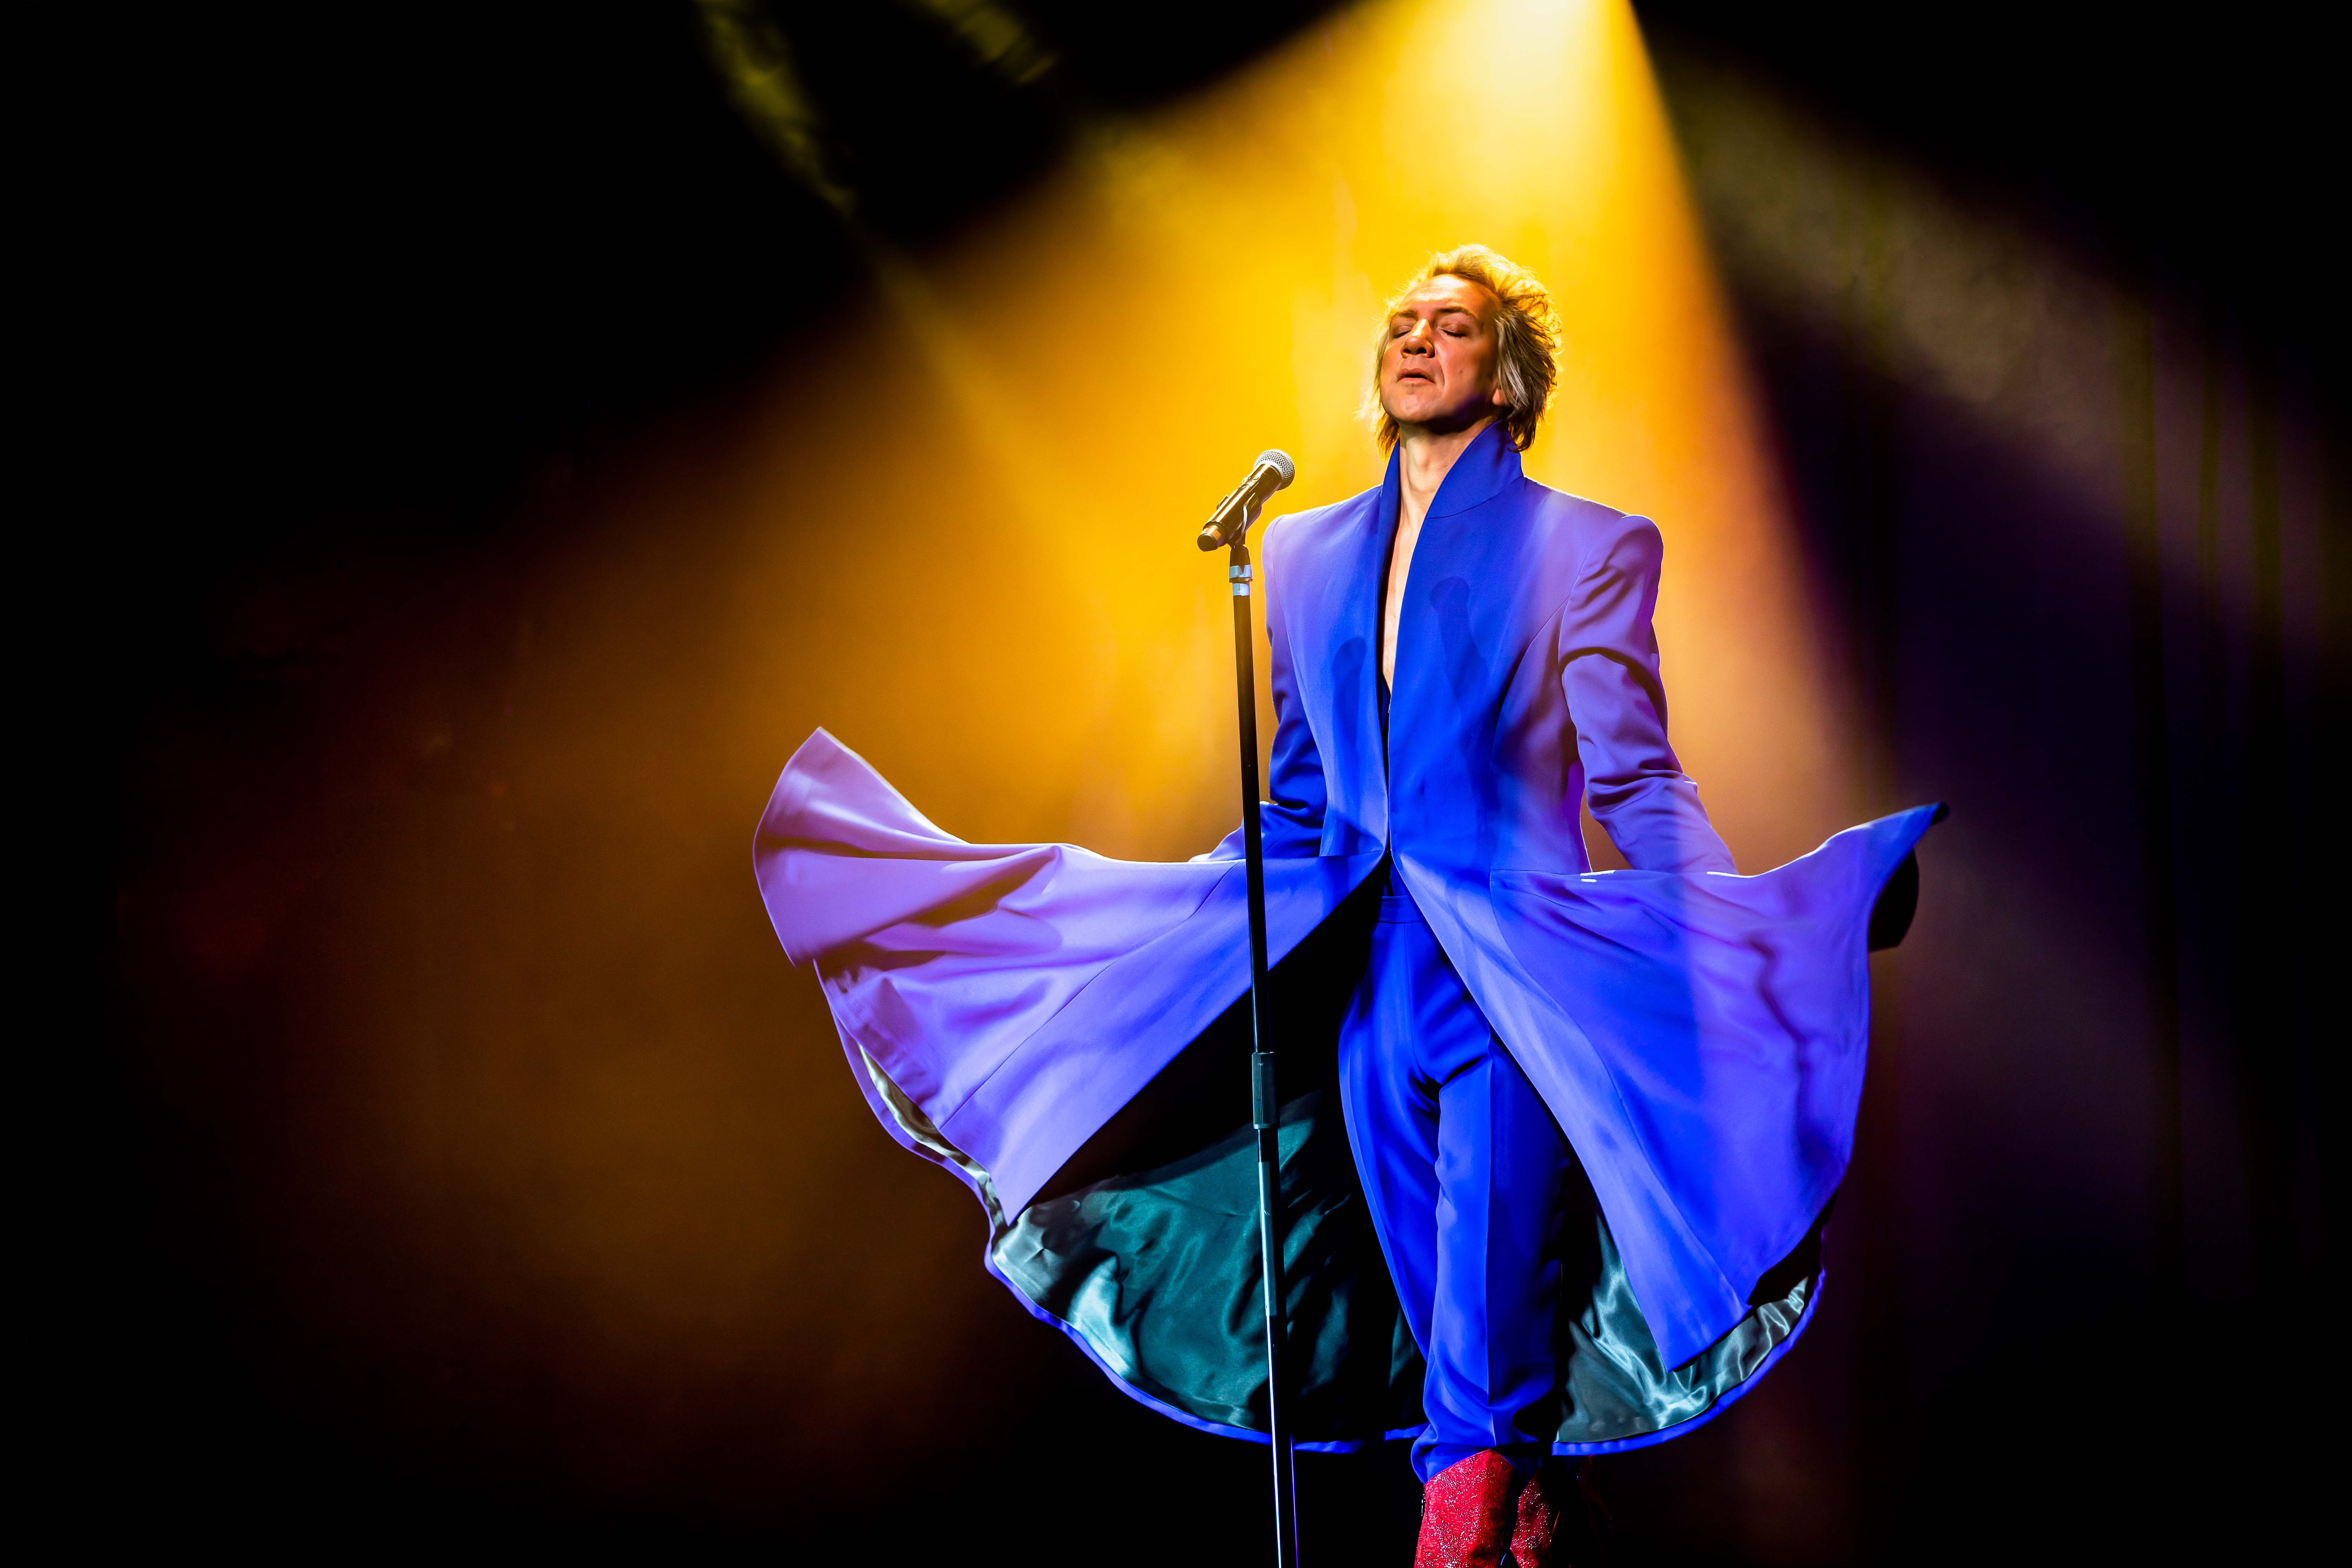 a performer wearing blue standing in a spotlight